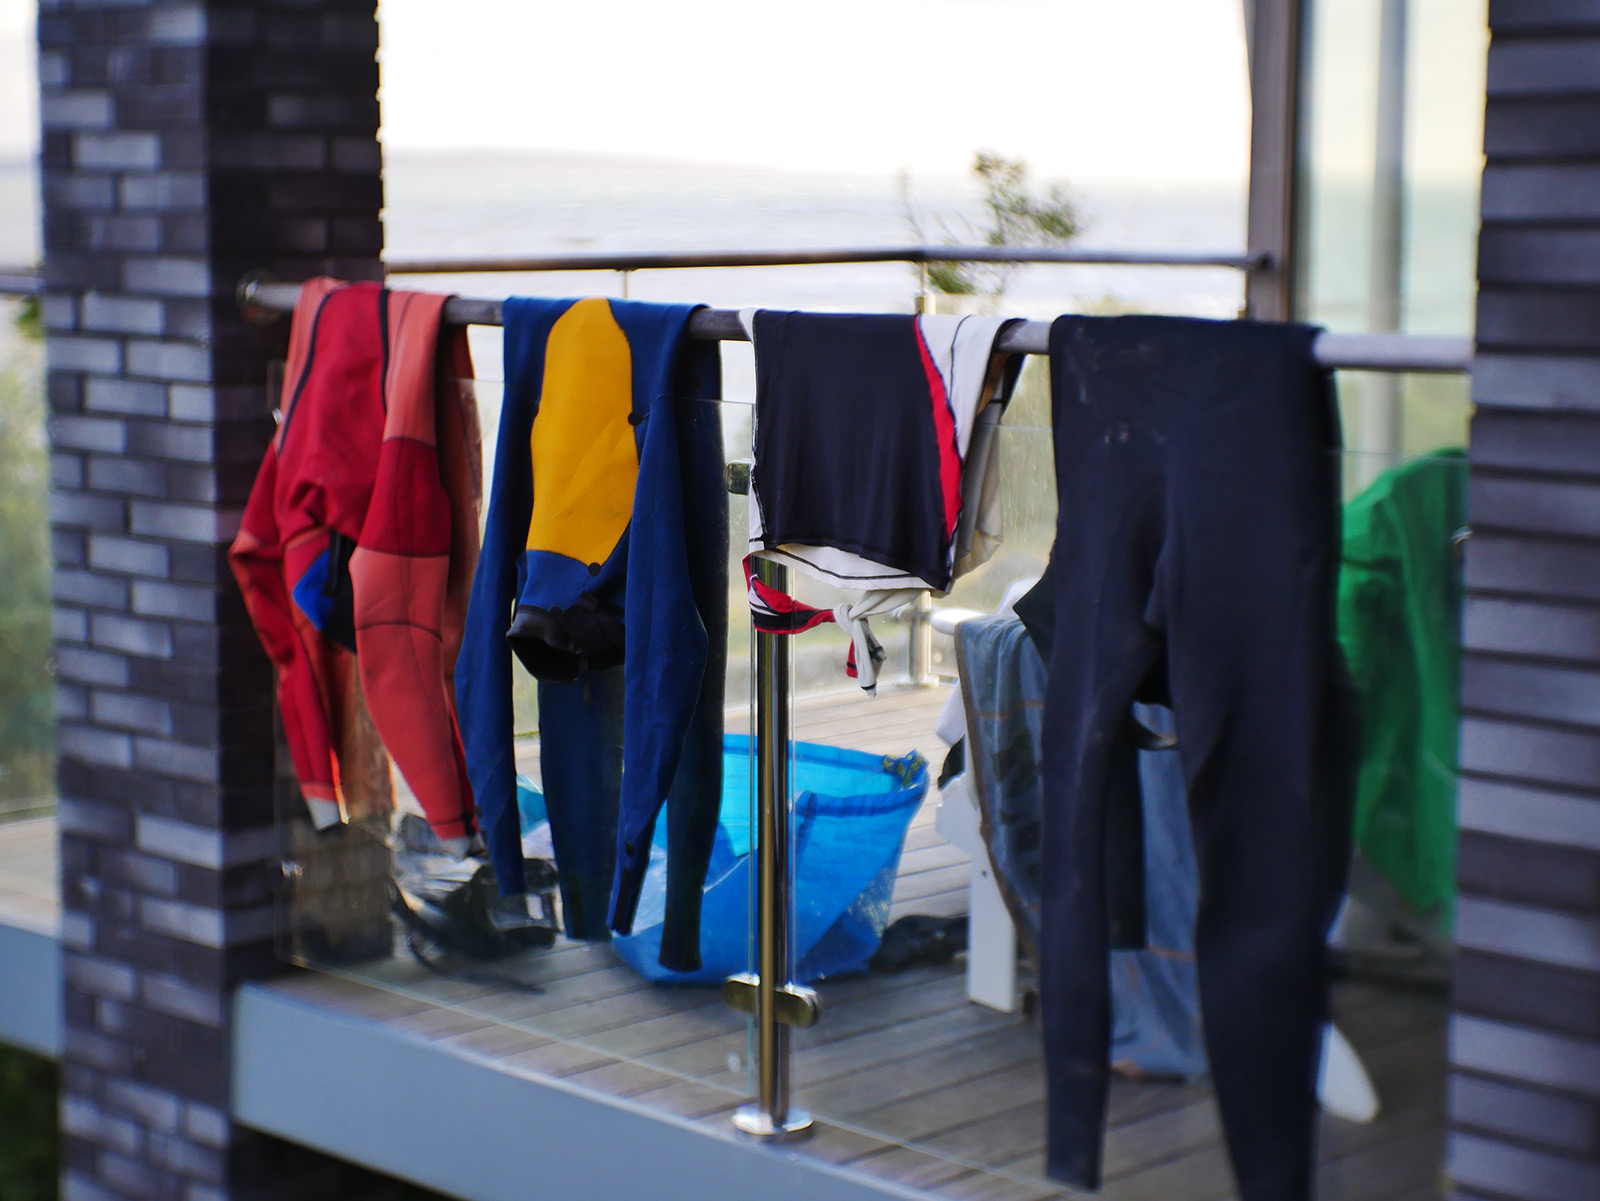 Wetsuits drying on a hand rail.